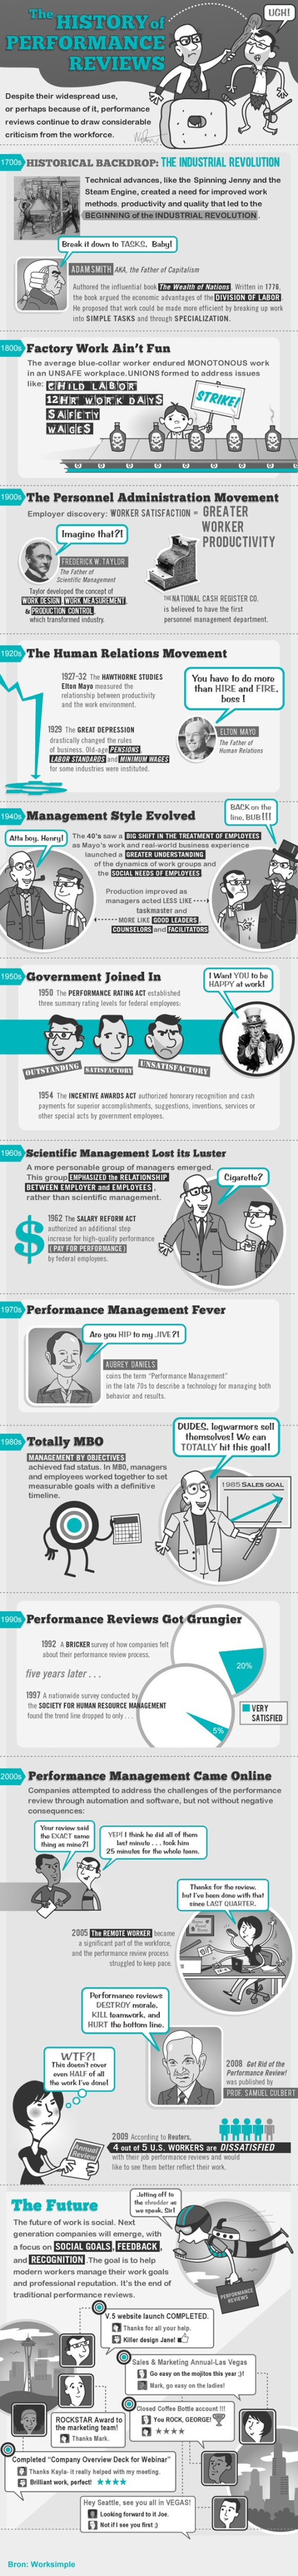 best images about performance appraisals a performance review